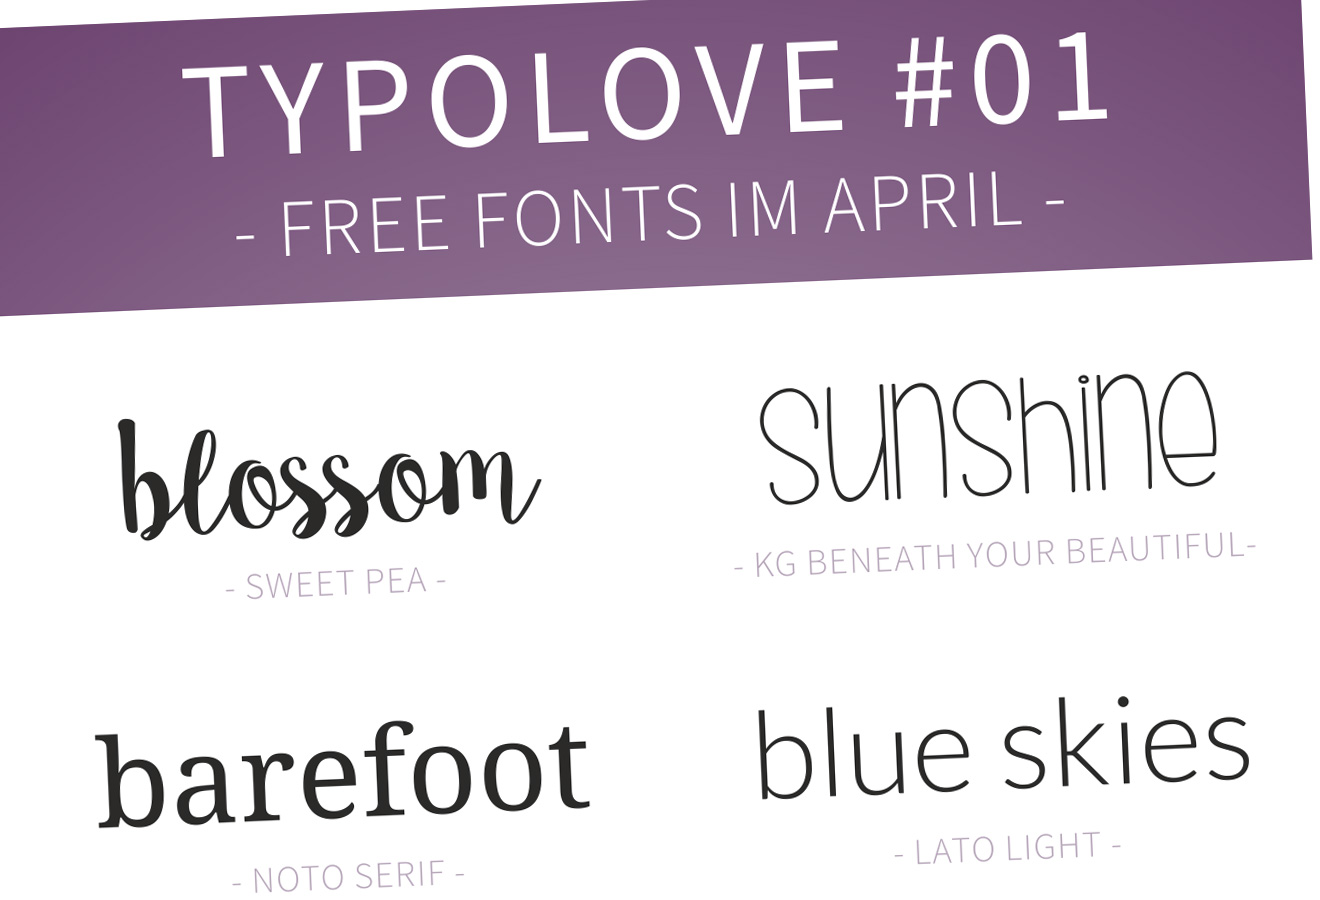 Typolove #01 - Free Fonts im April